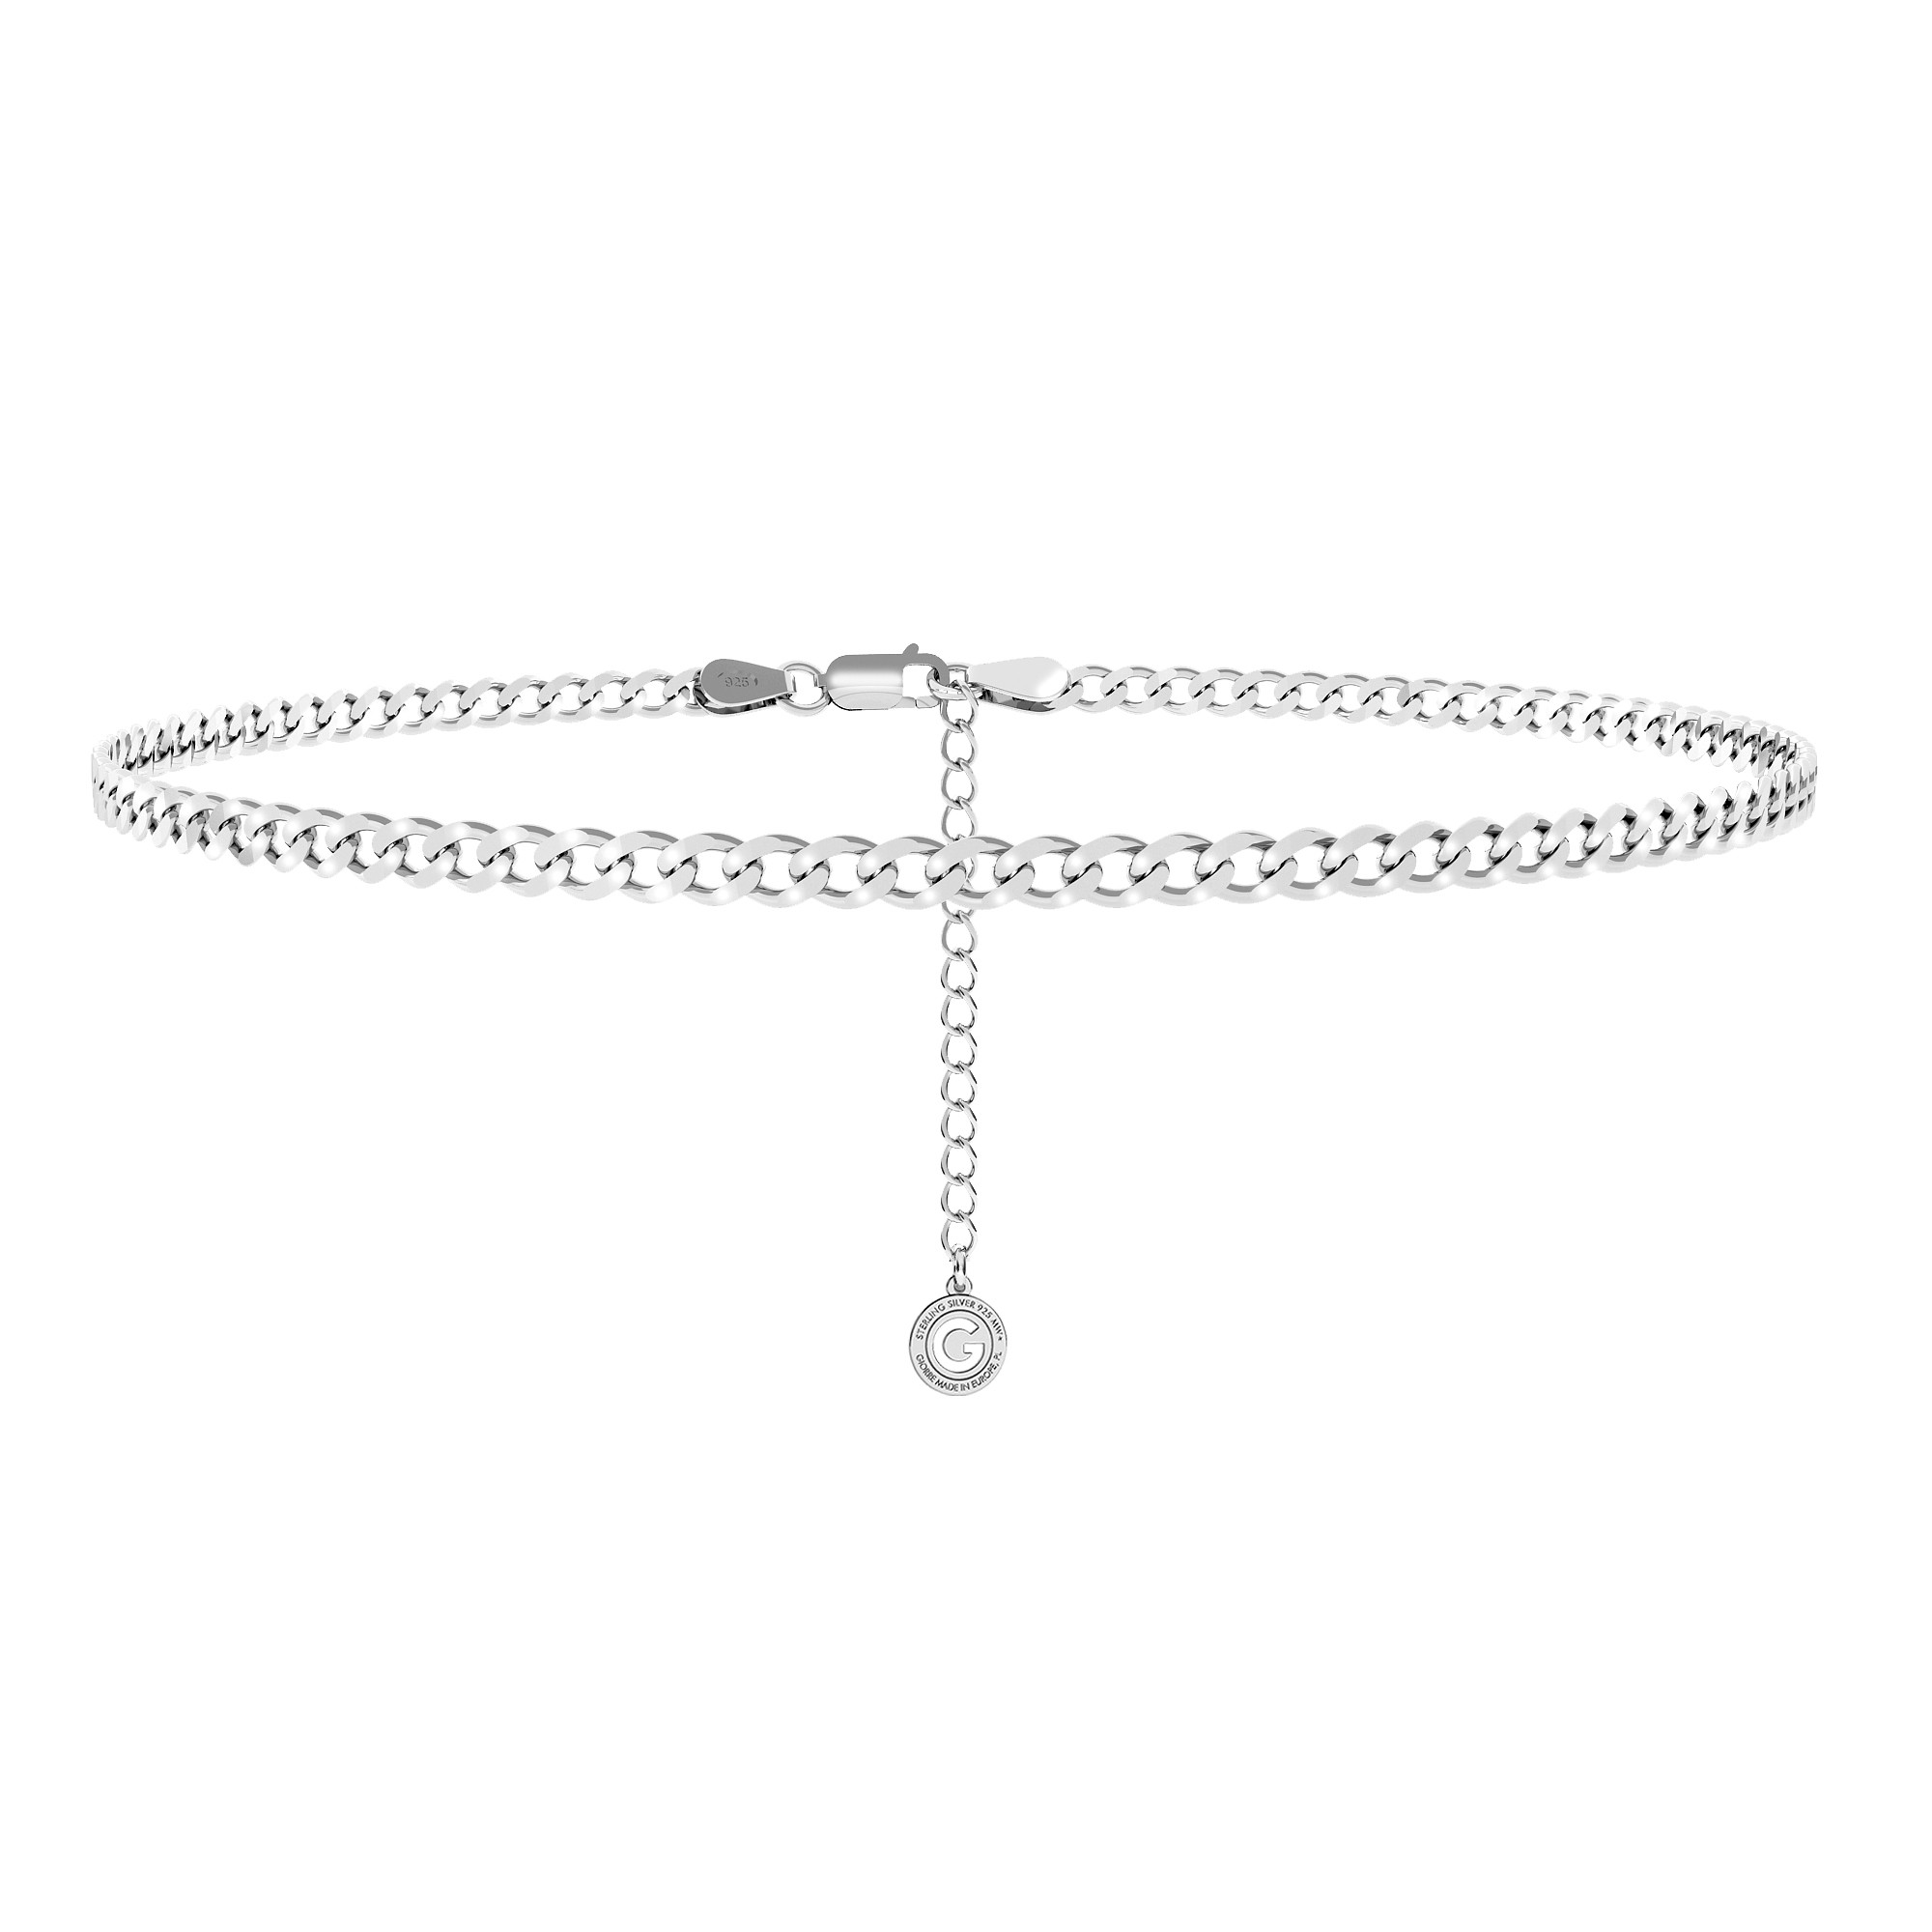 Silver choker curb chain sterling silver 925